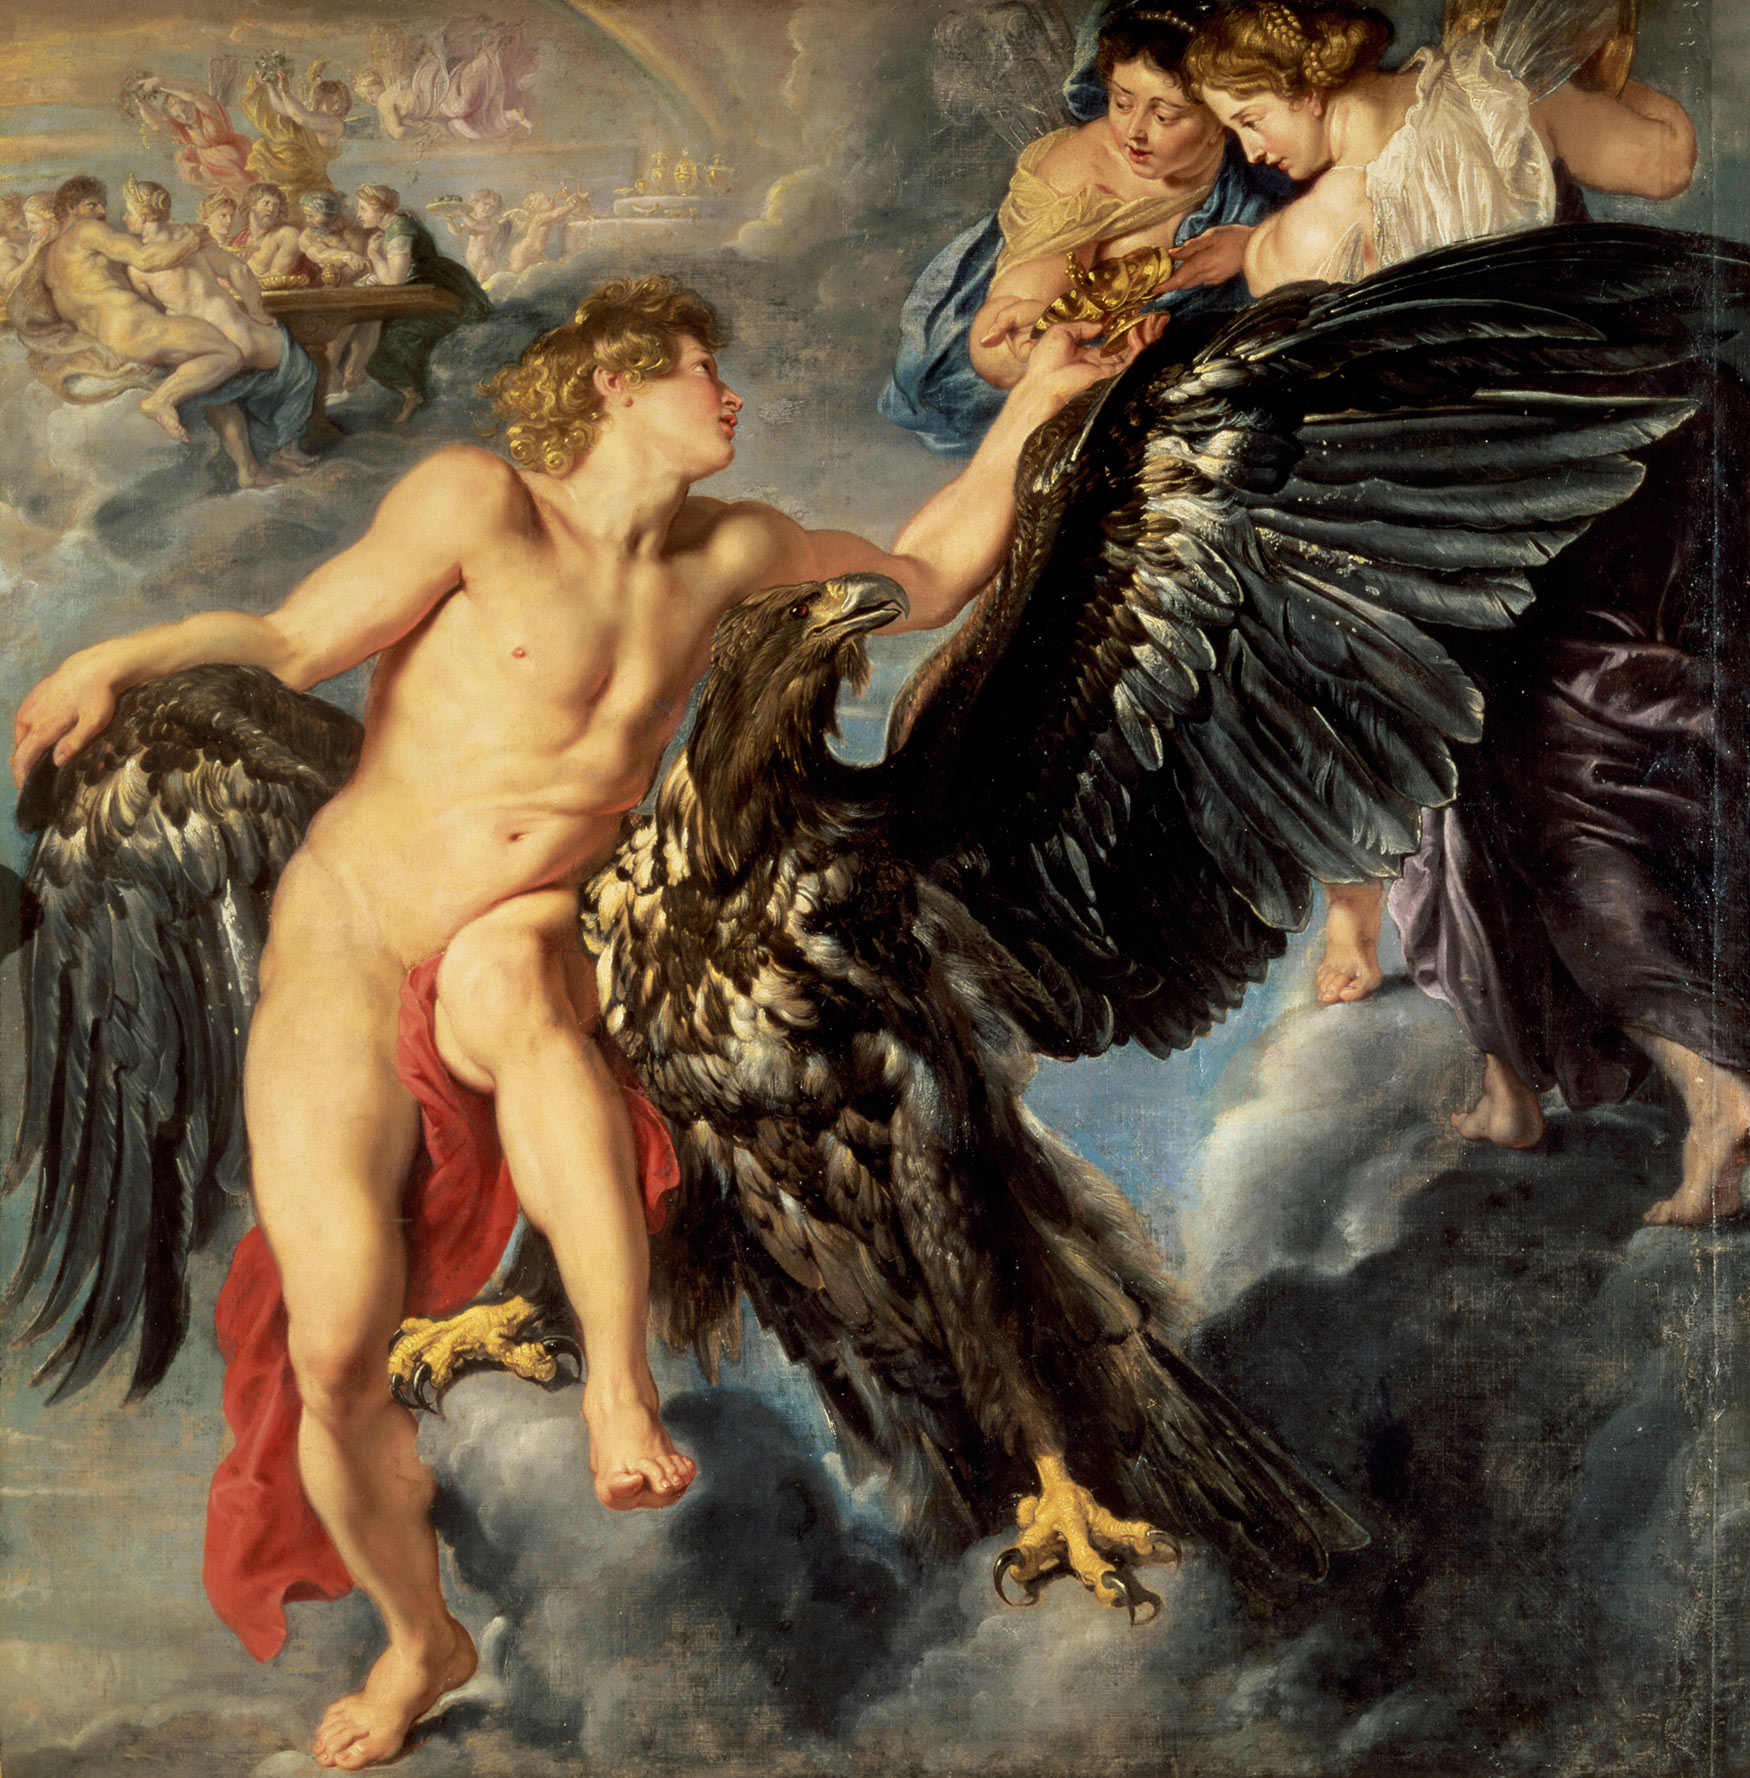 The Kidnapping of Ganymede by Peter Paul Rubens, 1611-12